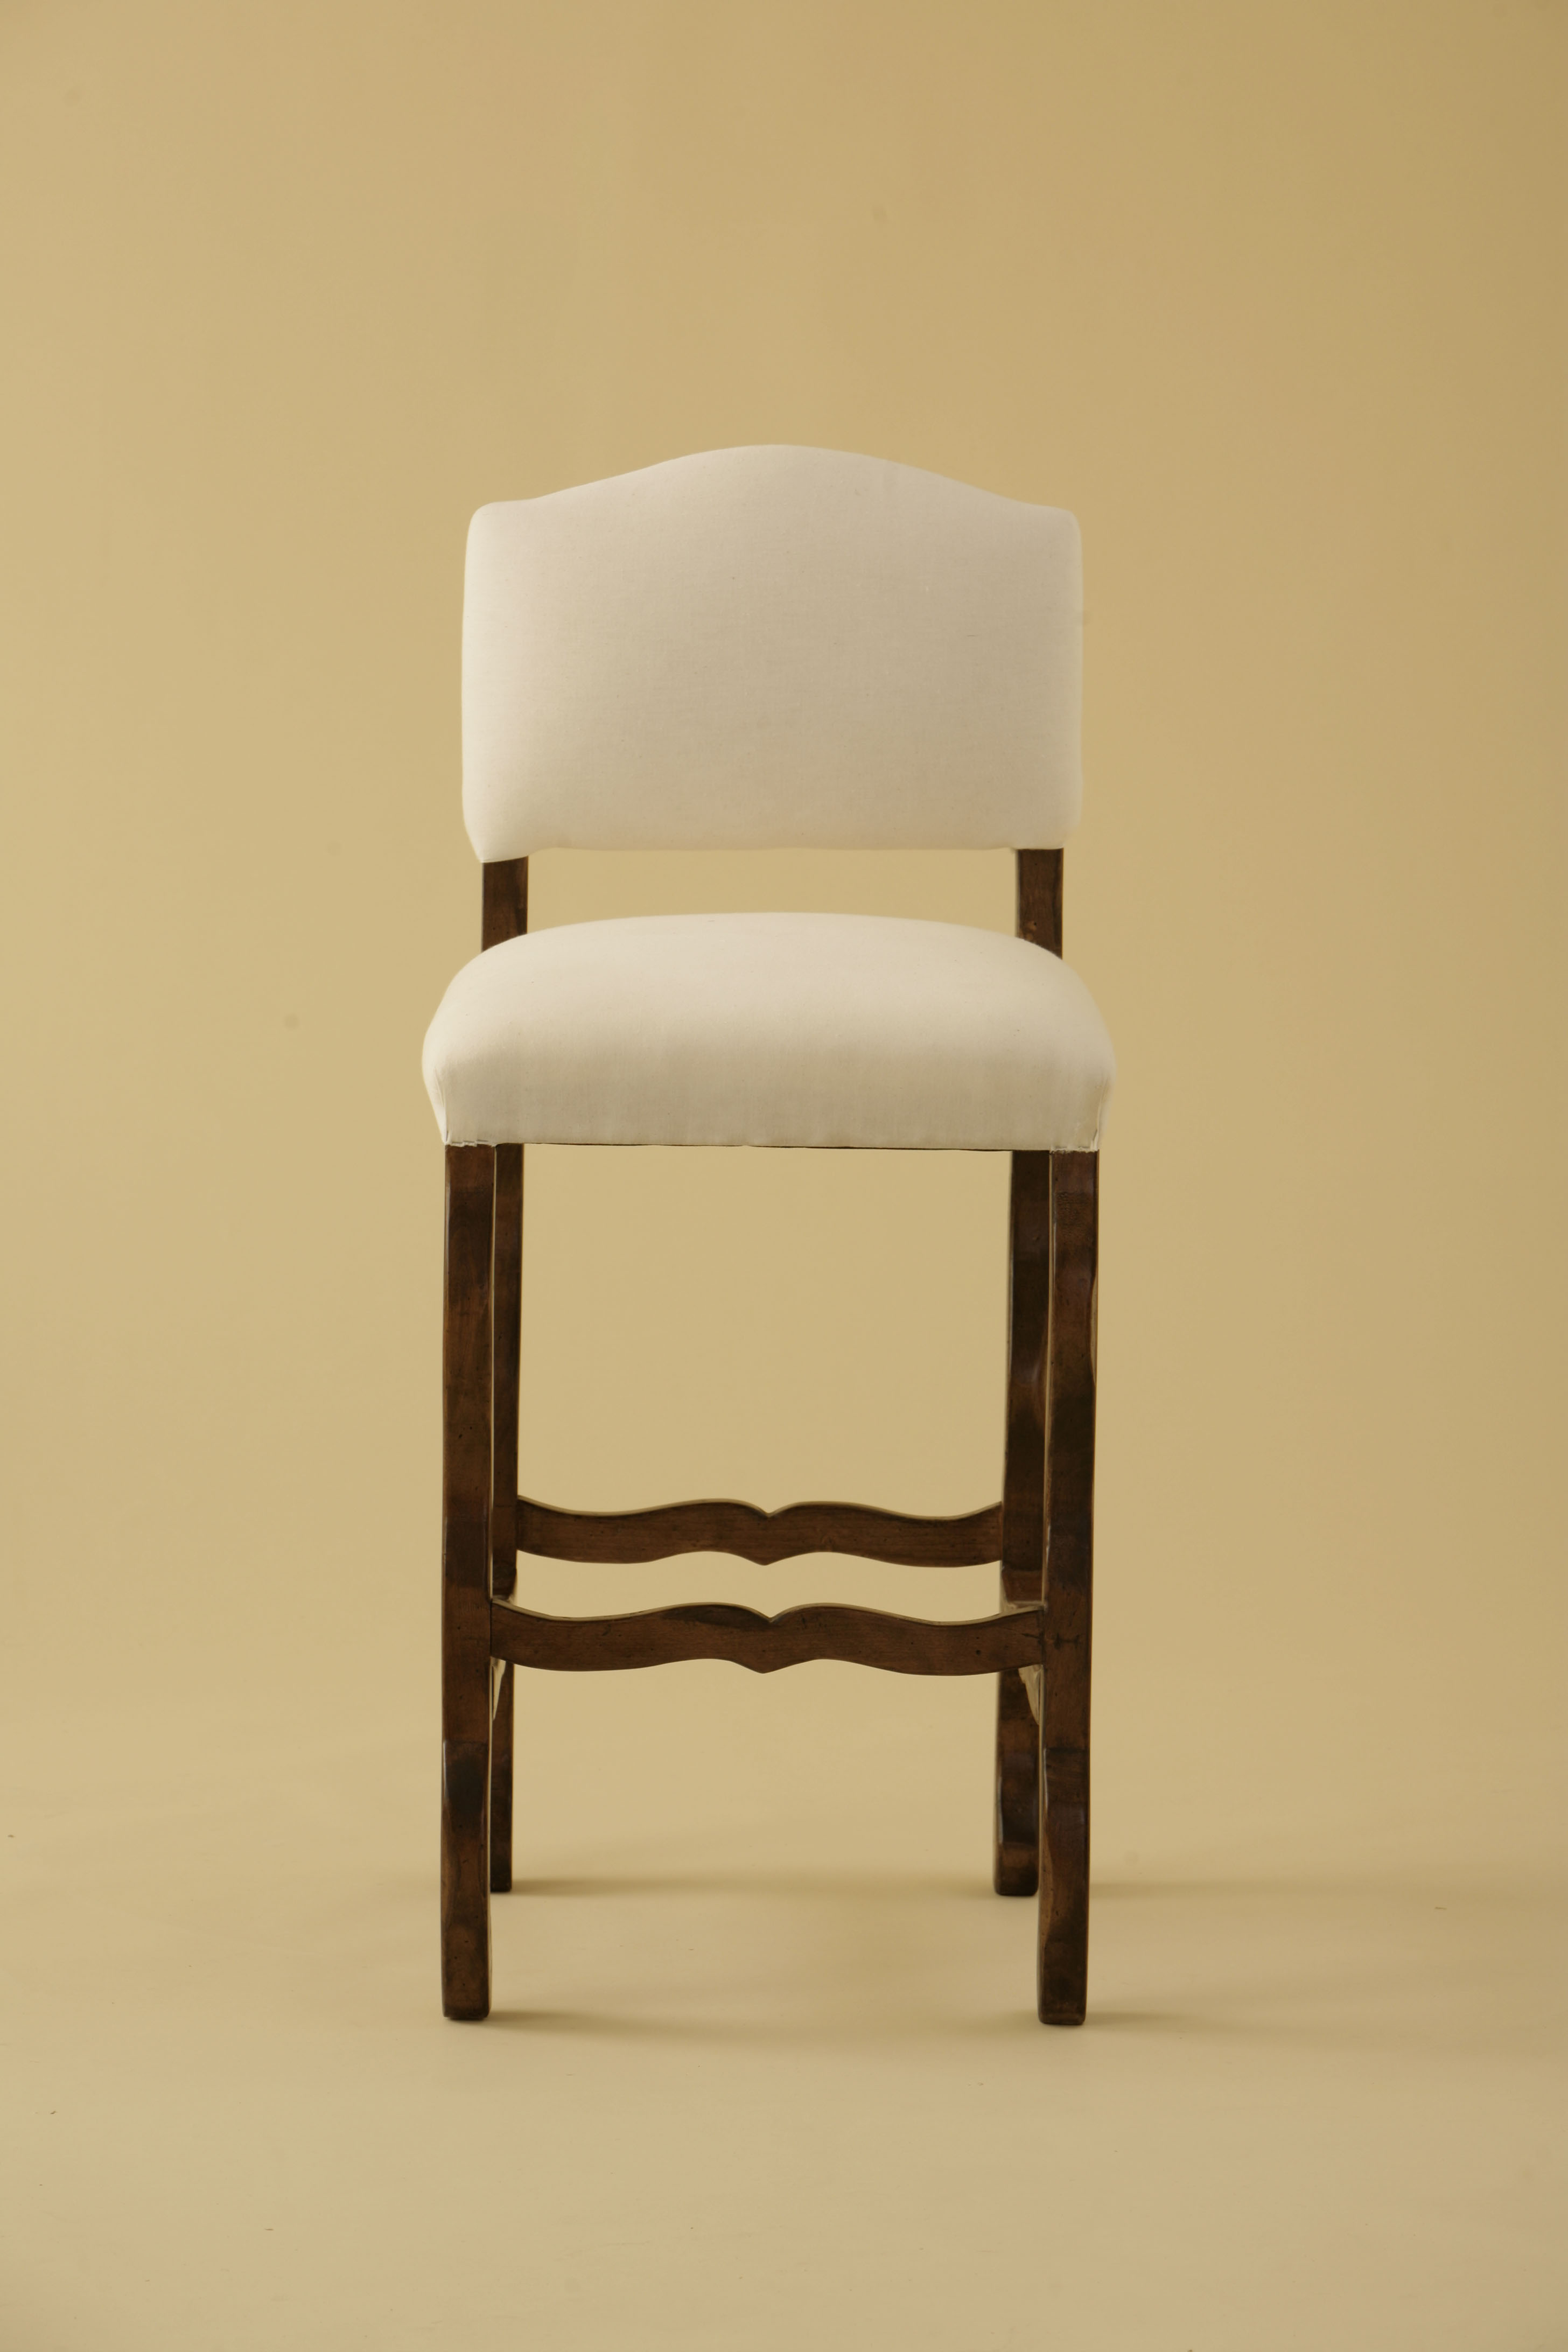 French Mutton Barstool